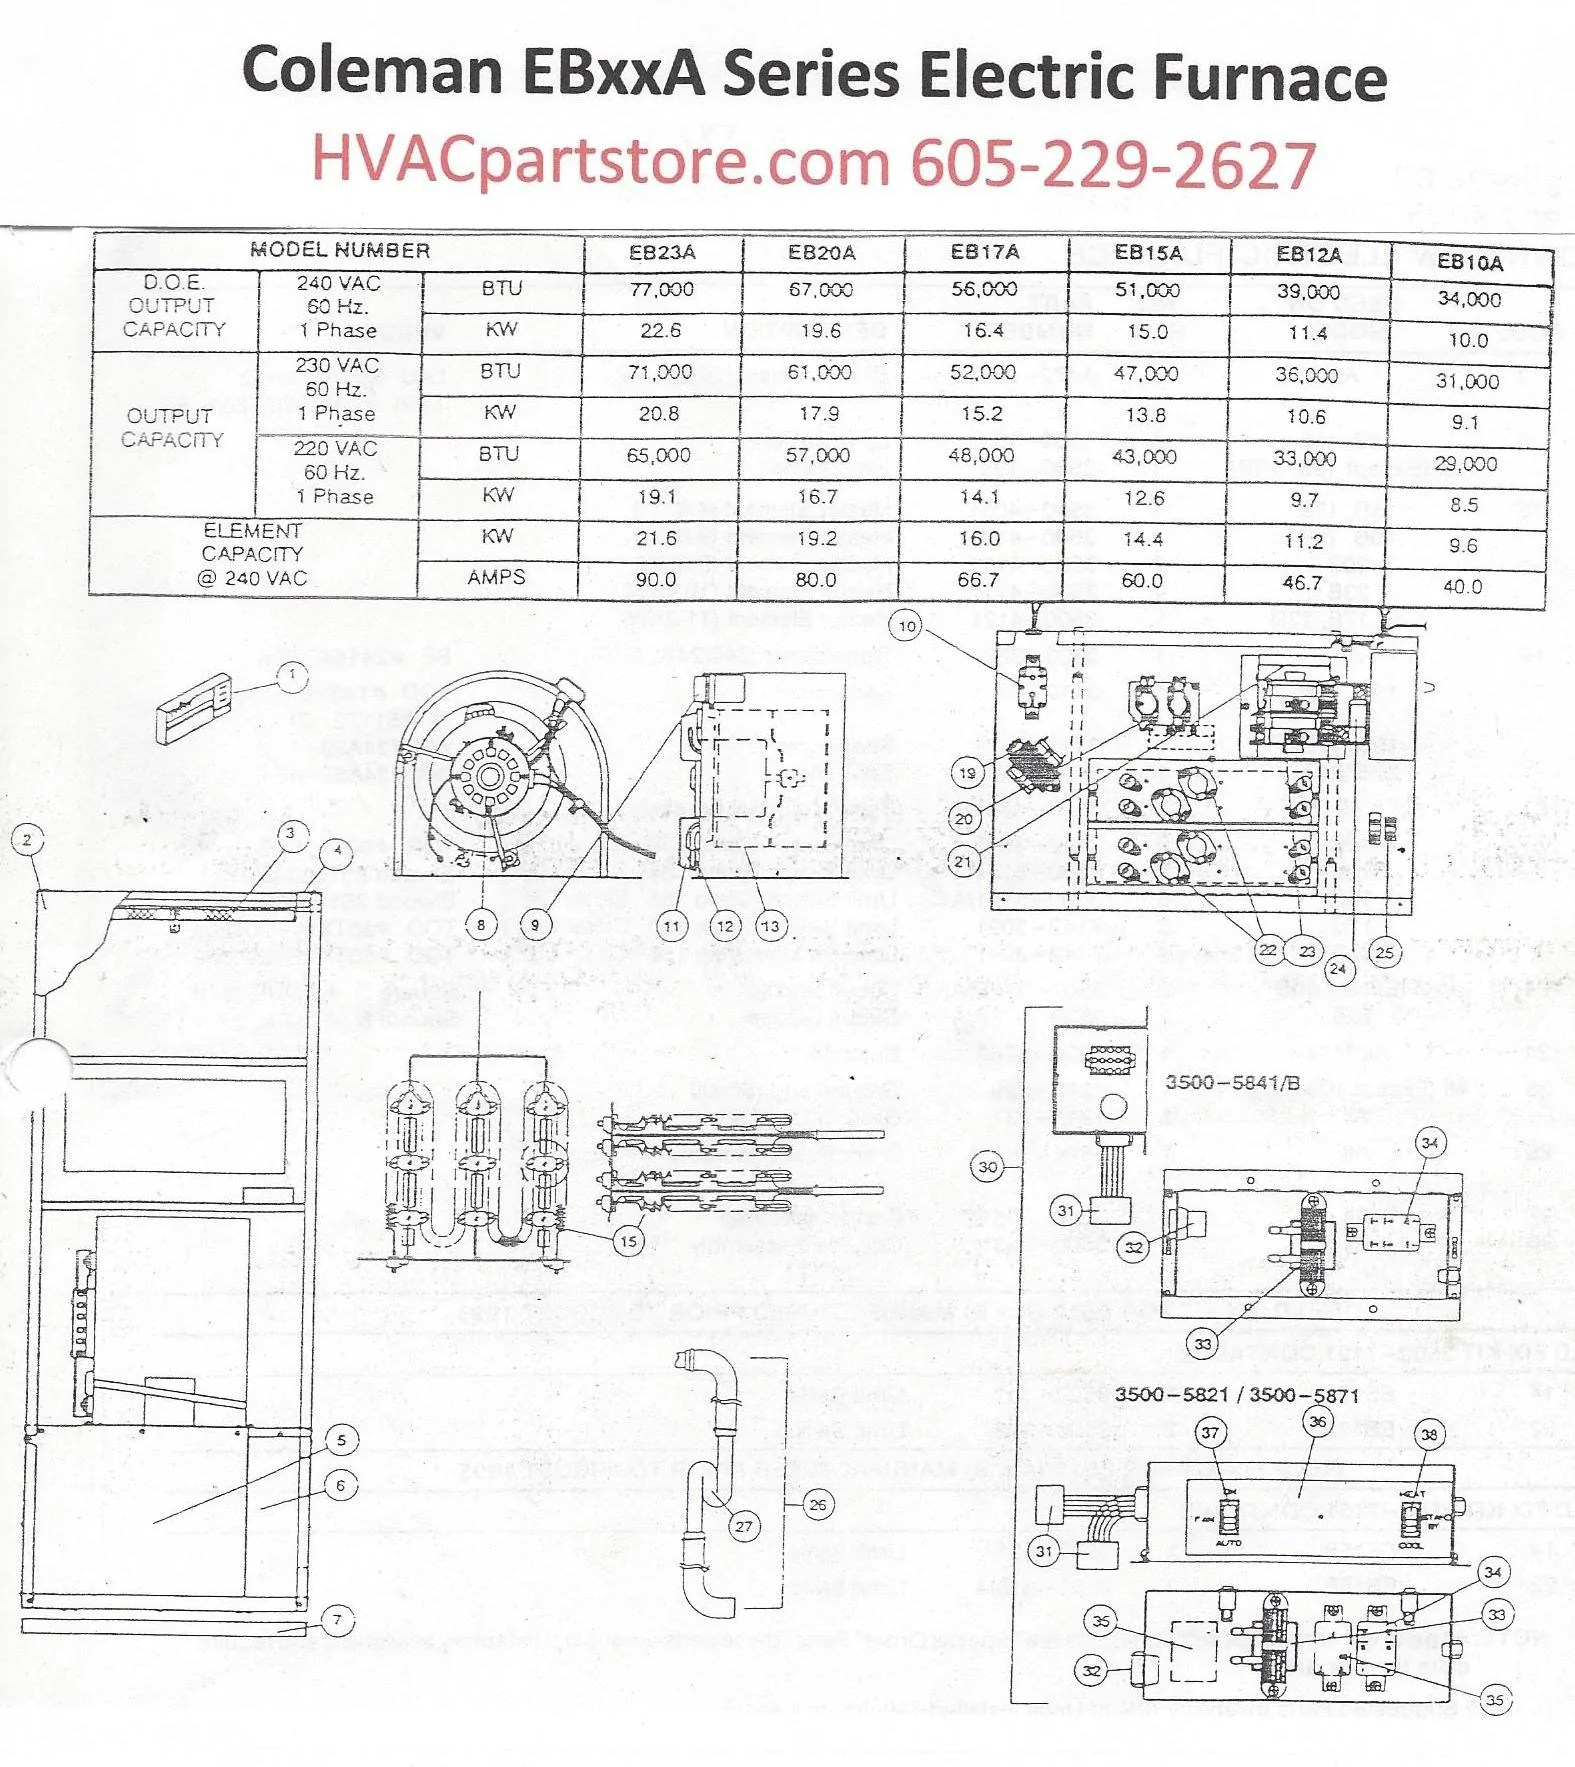 hight resolution of  6f60 4af3 9dea 1282aefef865 1786439620719197786 eb12a coleman electric furnace parts hvacpartstore electric furnace sequencer